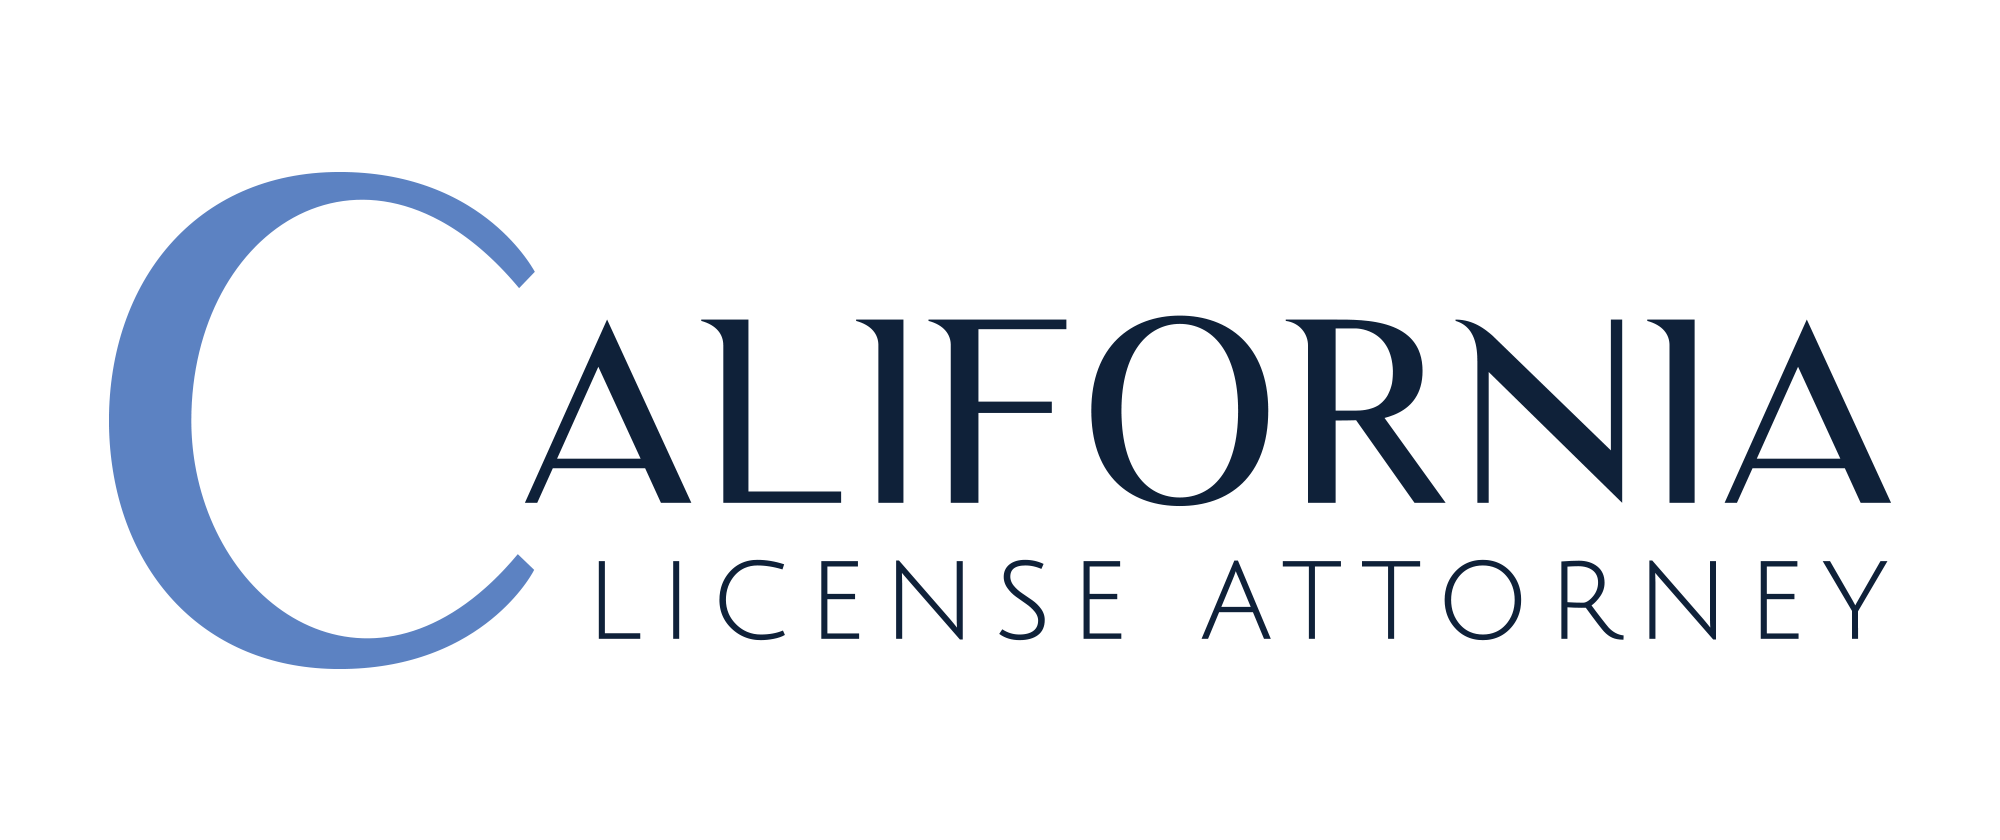 CALIFORNIA LICENSE ATTORNEY    logo